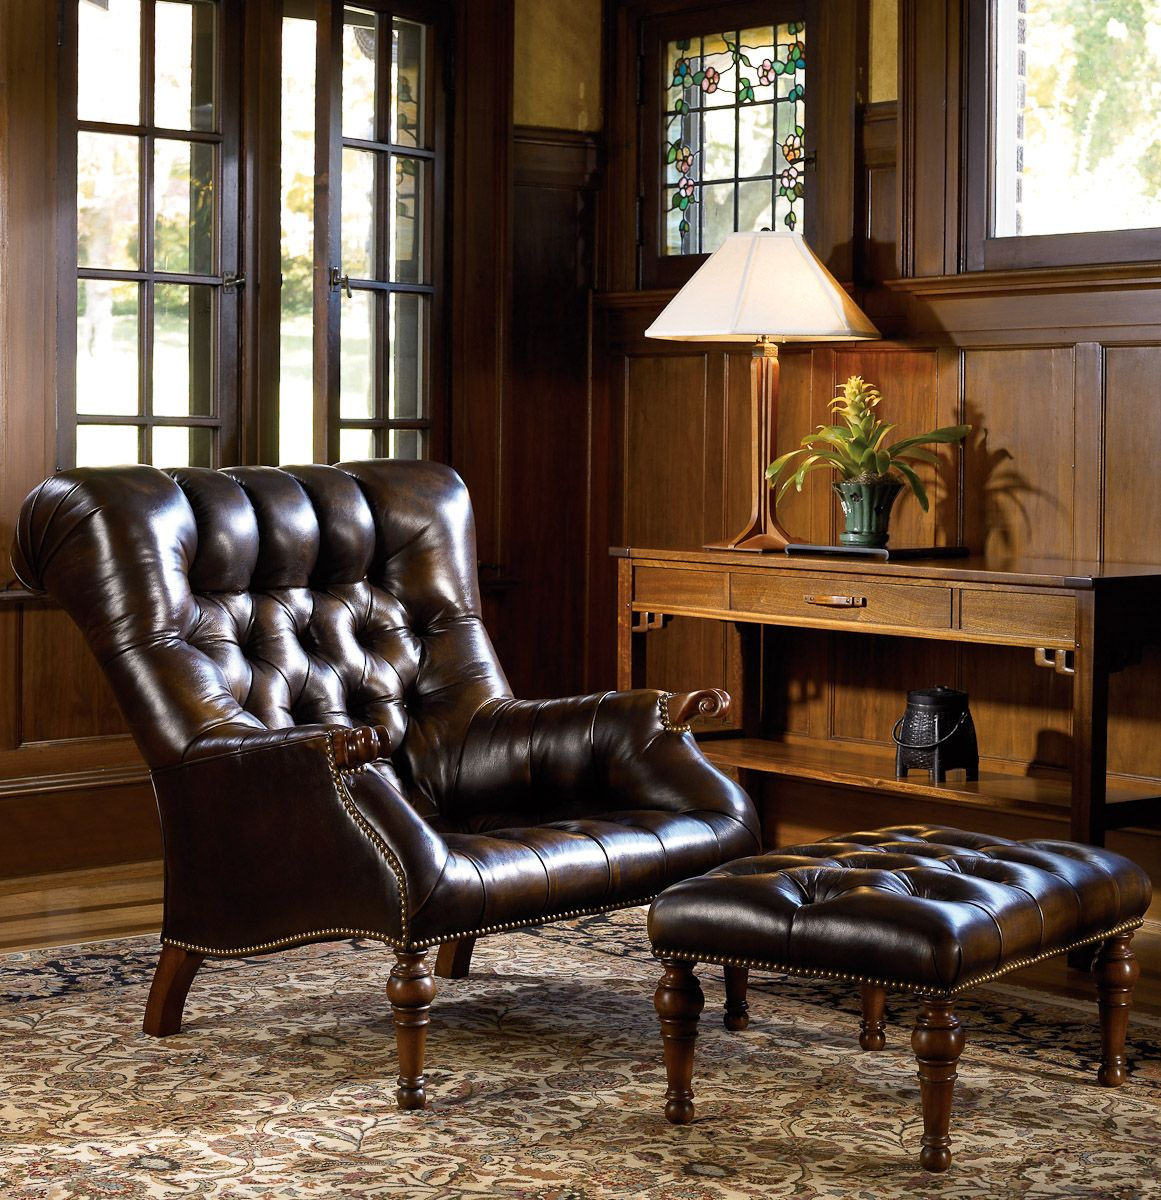 Exceptionnel Stickley Leopoldu0027s Chair Named For Our Stickley Co Founder, The Leopoldu0027s  Chair Is Based Off Of One Of His Favorite Designs. With Posh Tufting, Nail  Head ...